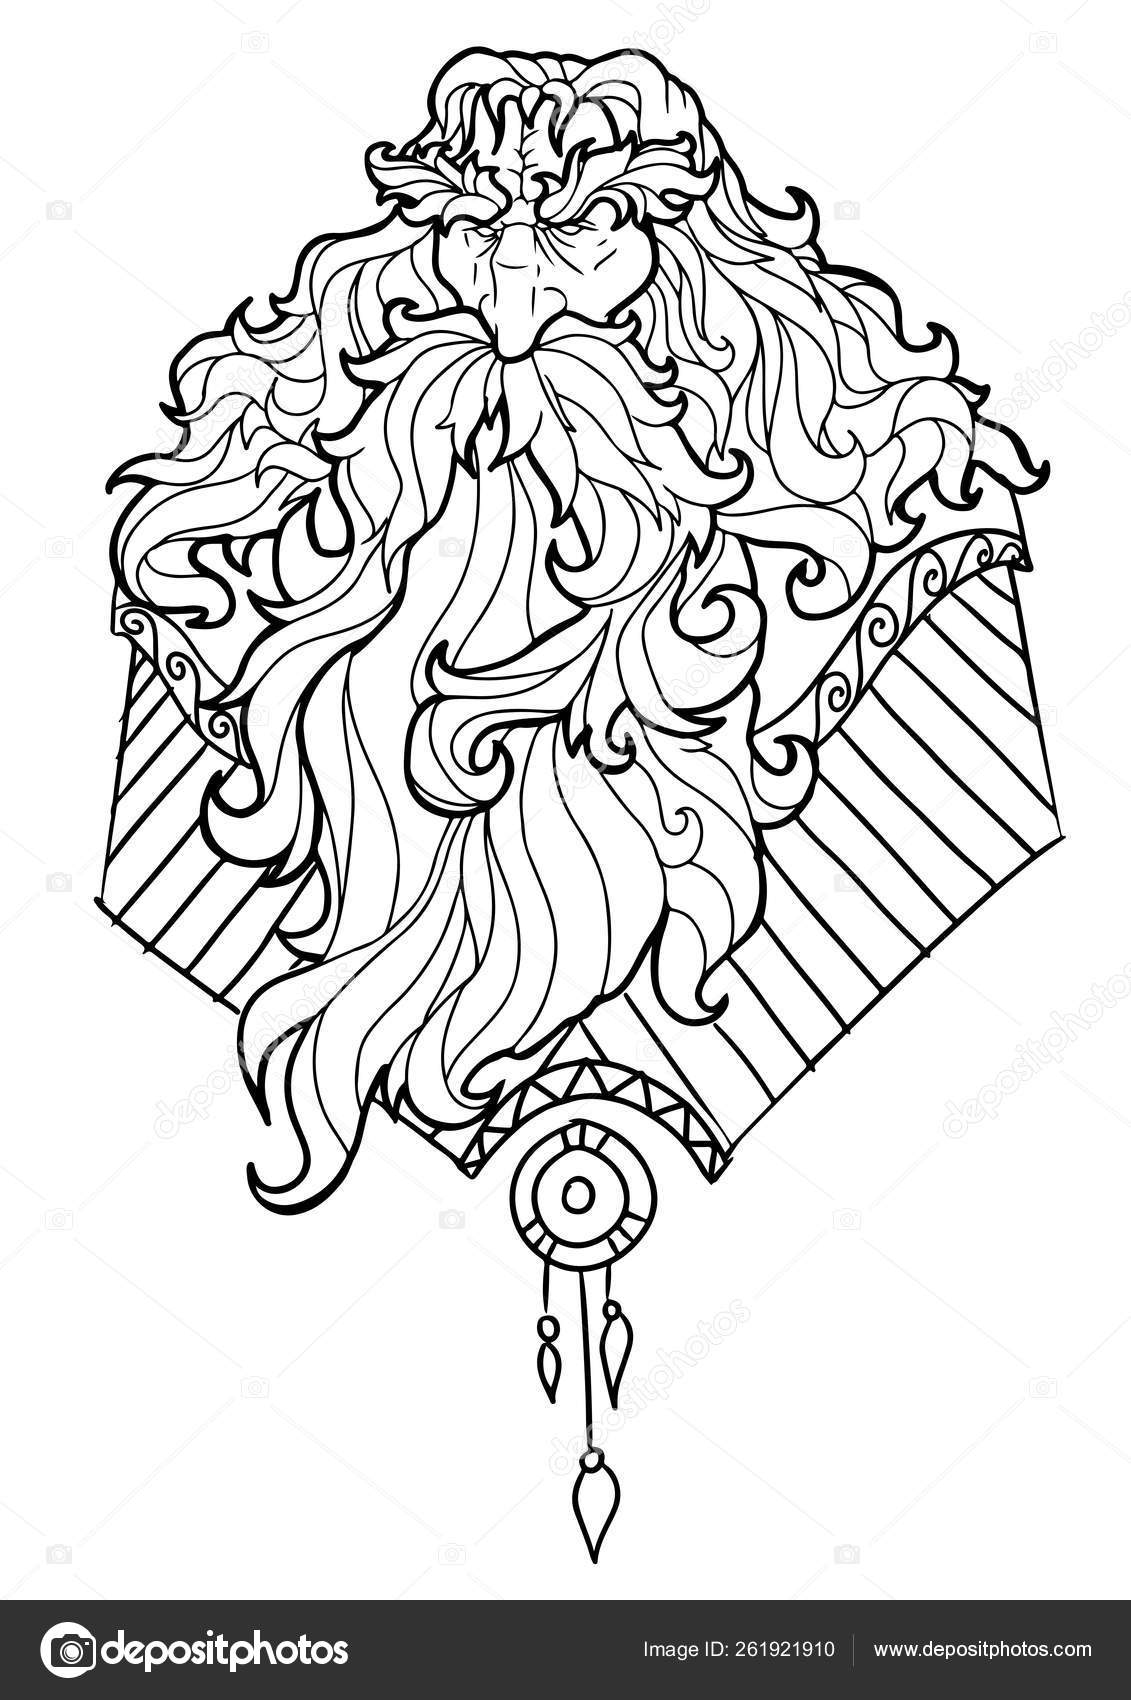 Bearded man with mustache for adult coloring pages tattoo art ethnic patterned t shirt print monochrome hand drawn illustration in doodle style